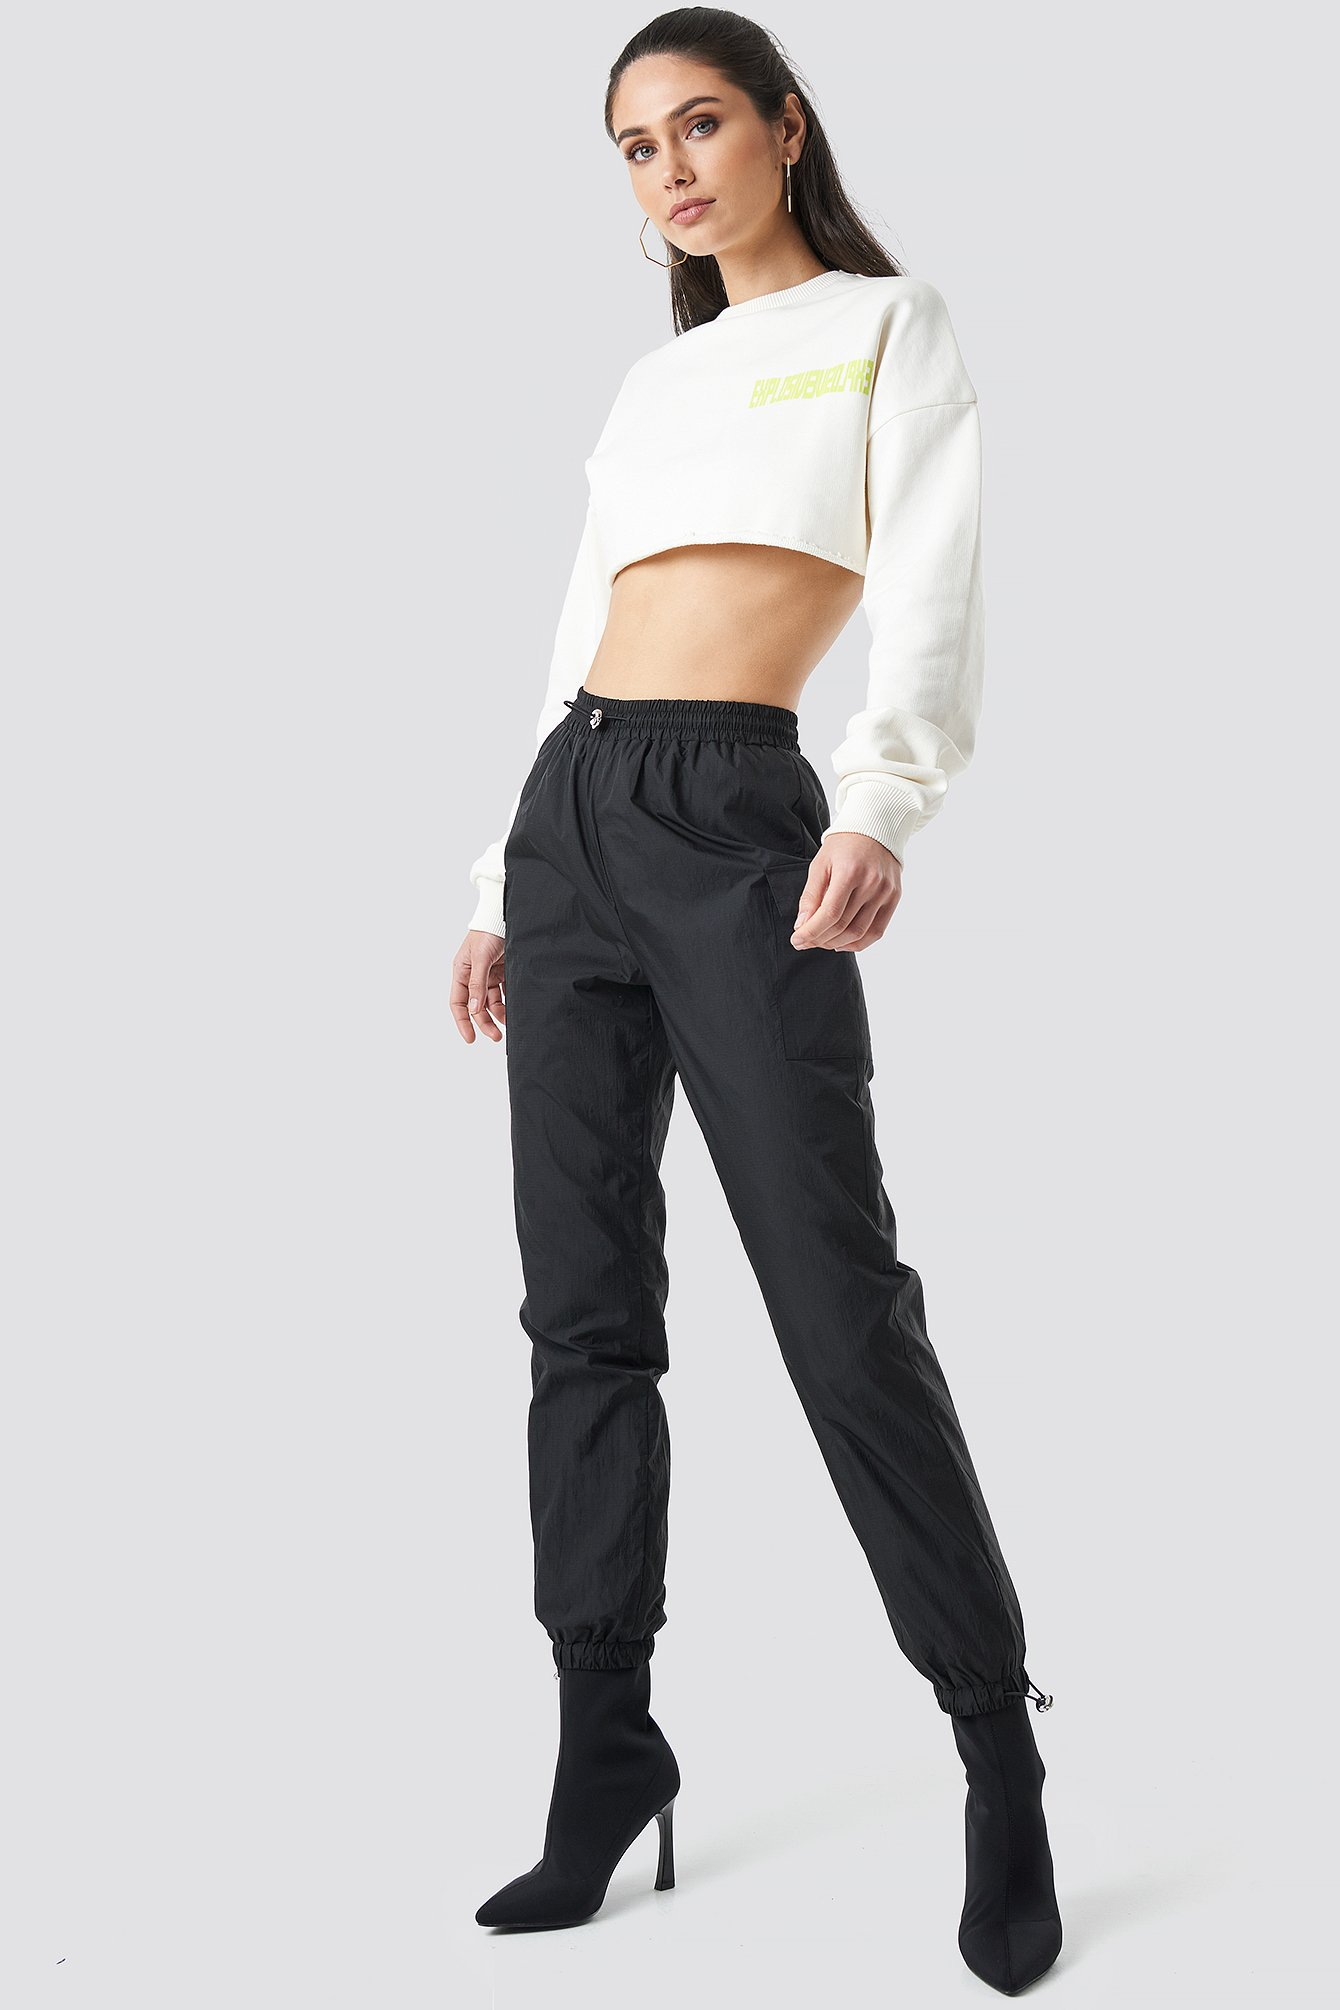 anna nooshin x na-kd -  Side Pocket Track Pants - Black